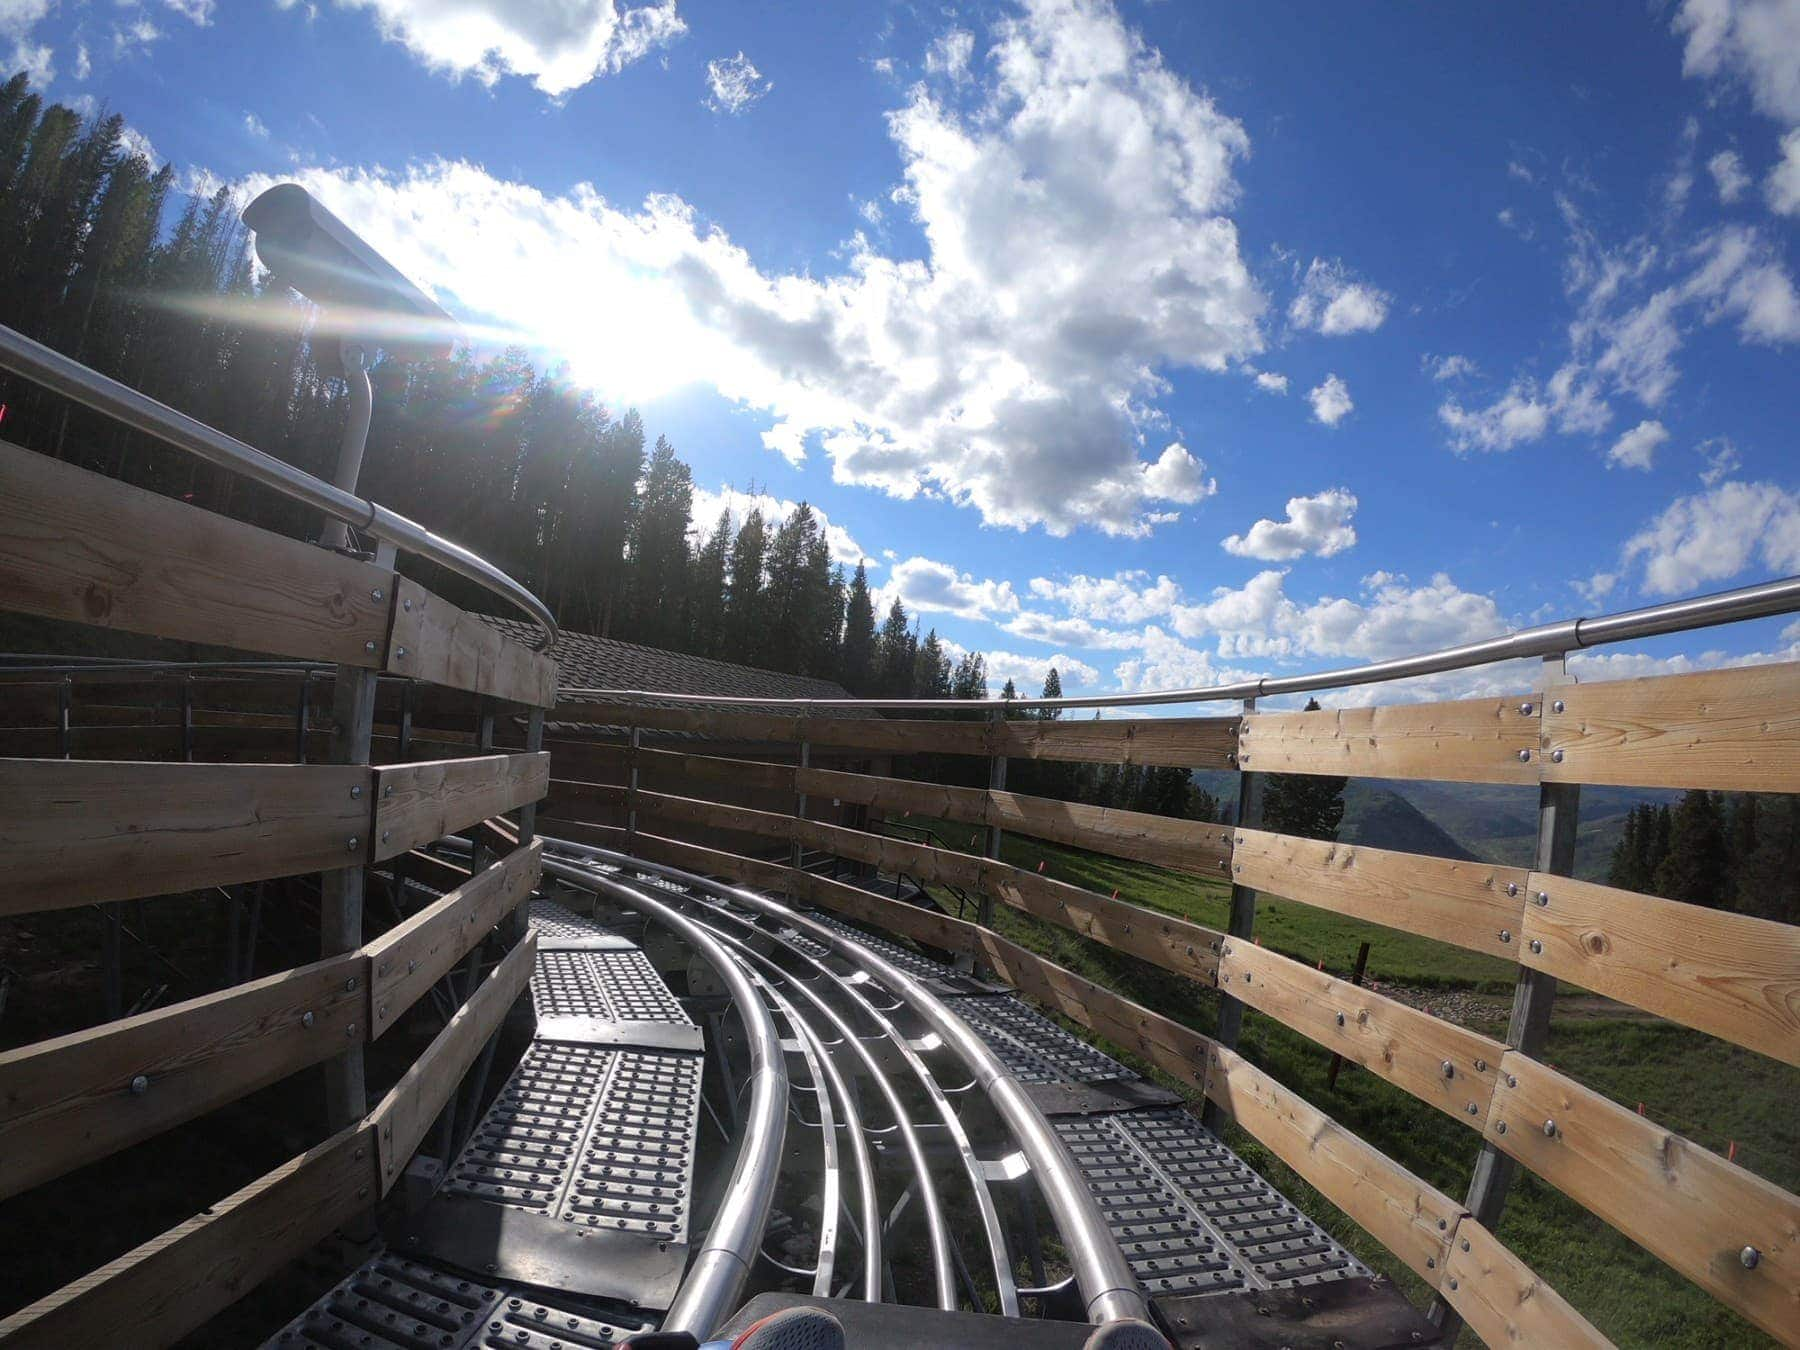 Alpine Coaster #summer #vailcolorado #vacation #citygirlgonemom